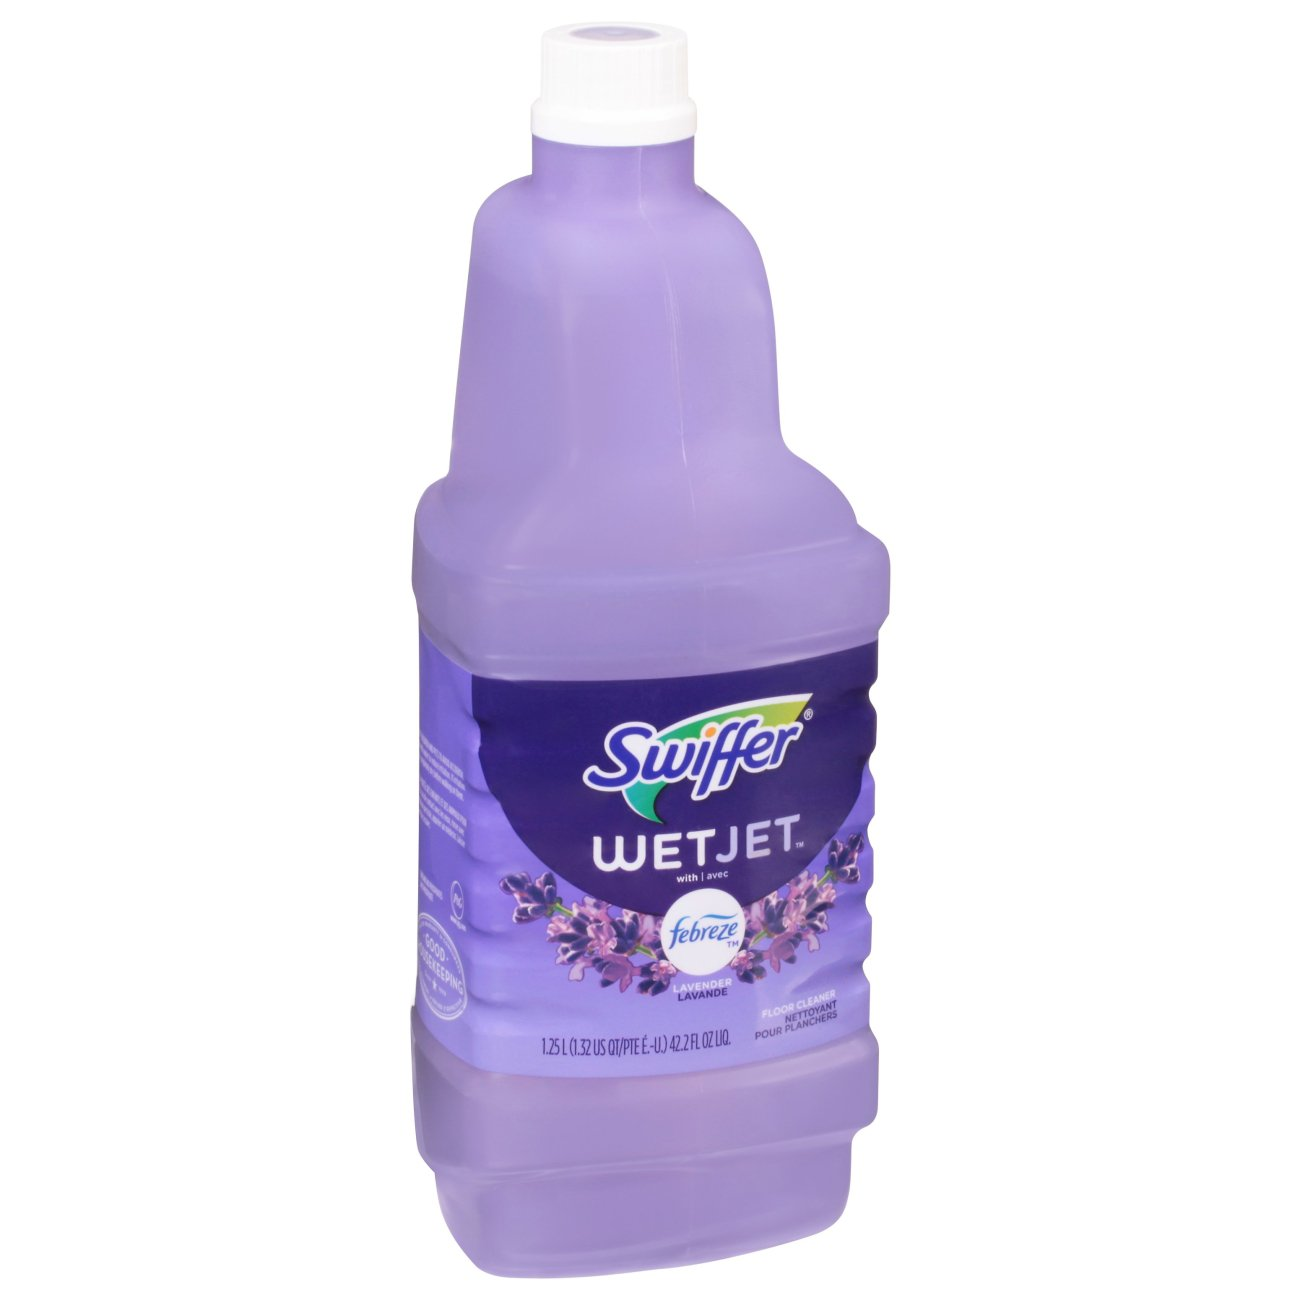 Swiffer<sup>&reg;</sup> WetJet<sup>&reg;</sup> Lavender Vanilla And Comfort Multi‑purpose Cleaner Refill